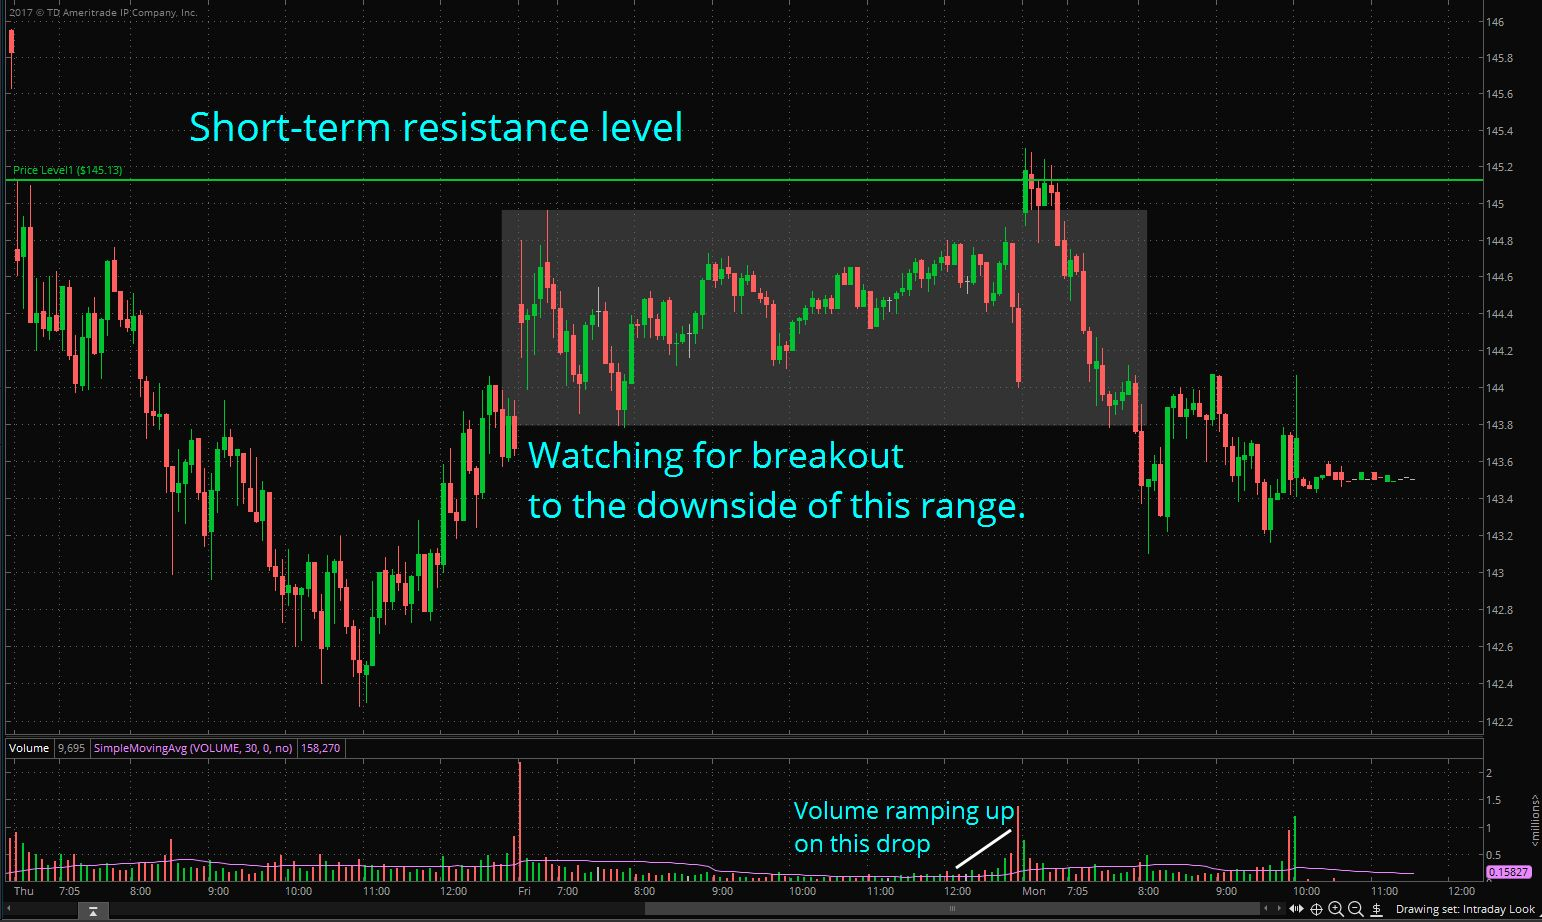 Intraday Look with Annotations